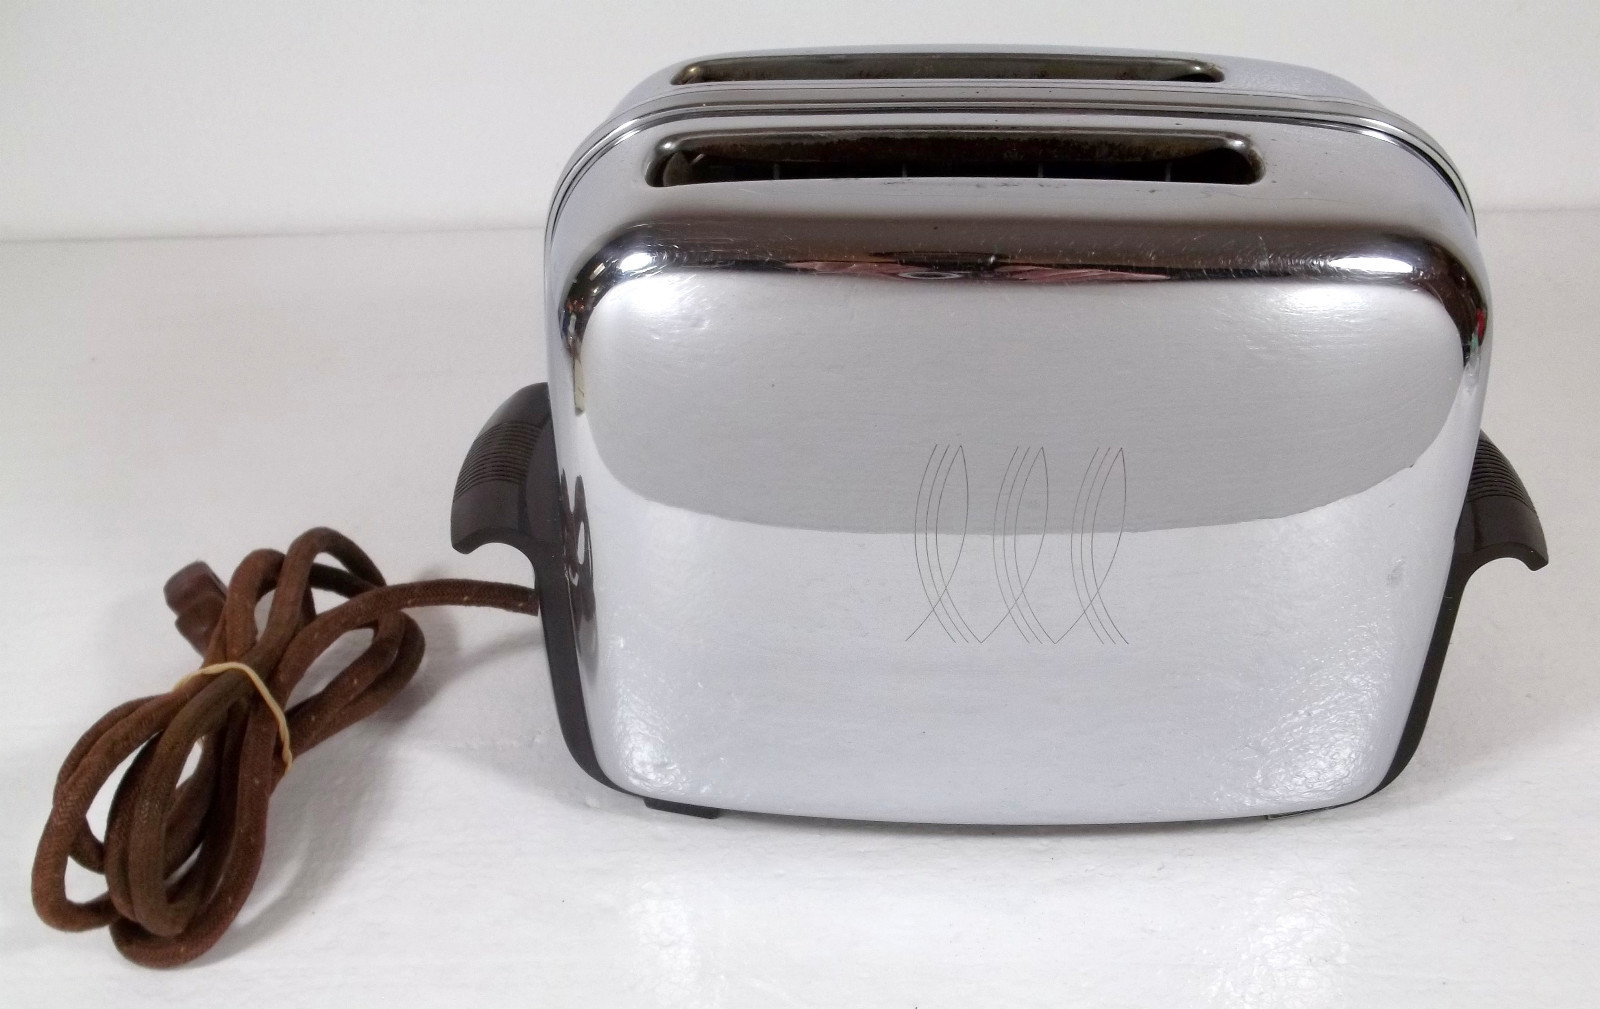 Vintage Toastmaster Automatic Pop up Toaster The History Girl